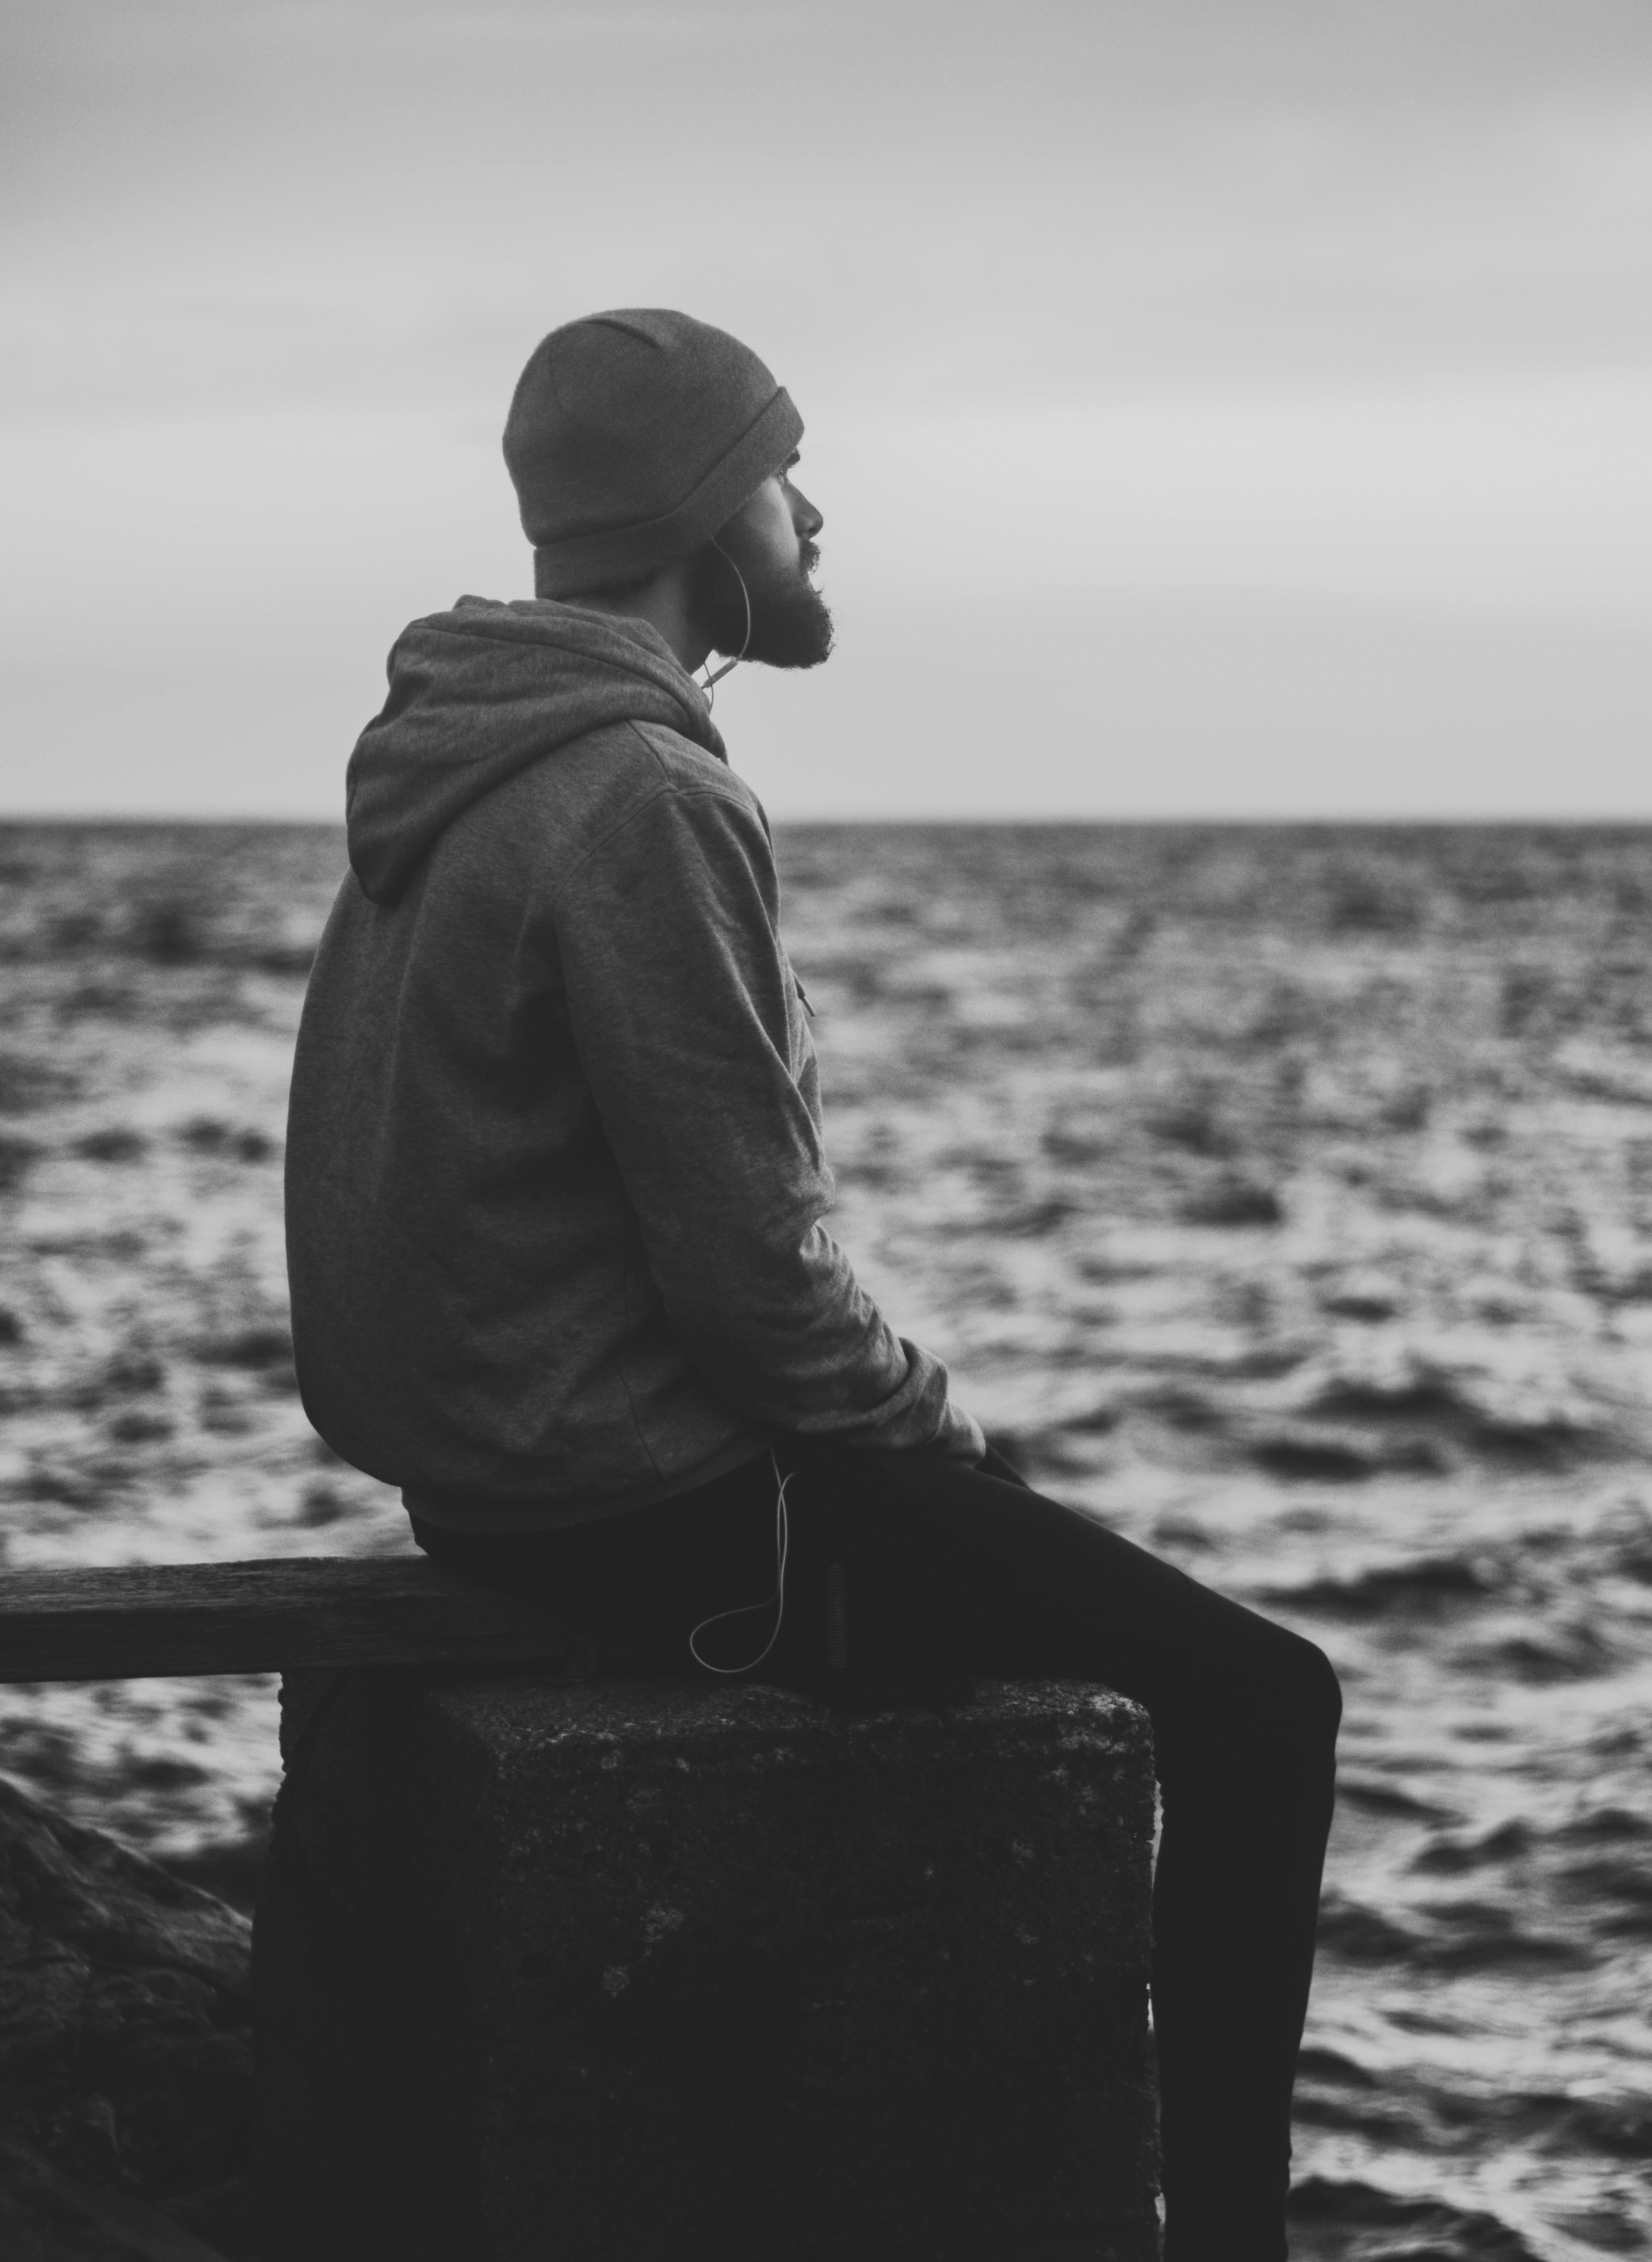 Grayscale Photo of Man in Hoodie and Kit Cap Sitting Near Bodies of Water, Sea, Outdoors, Seashore, Water, HQ Photo